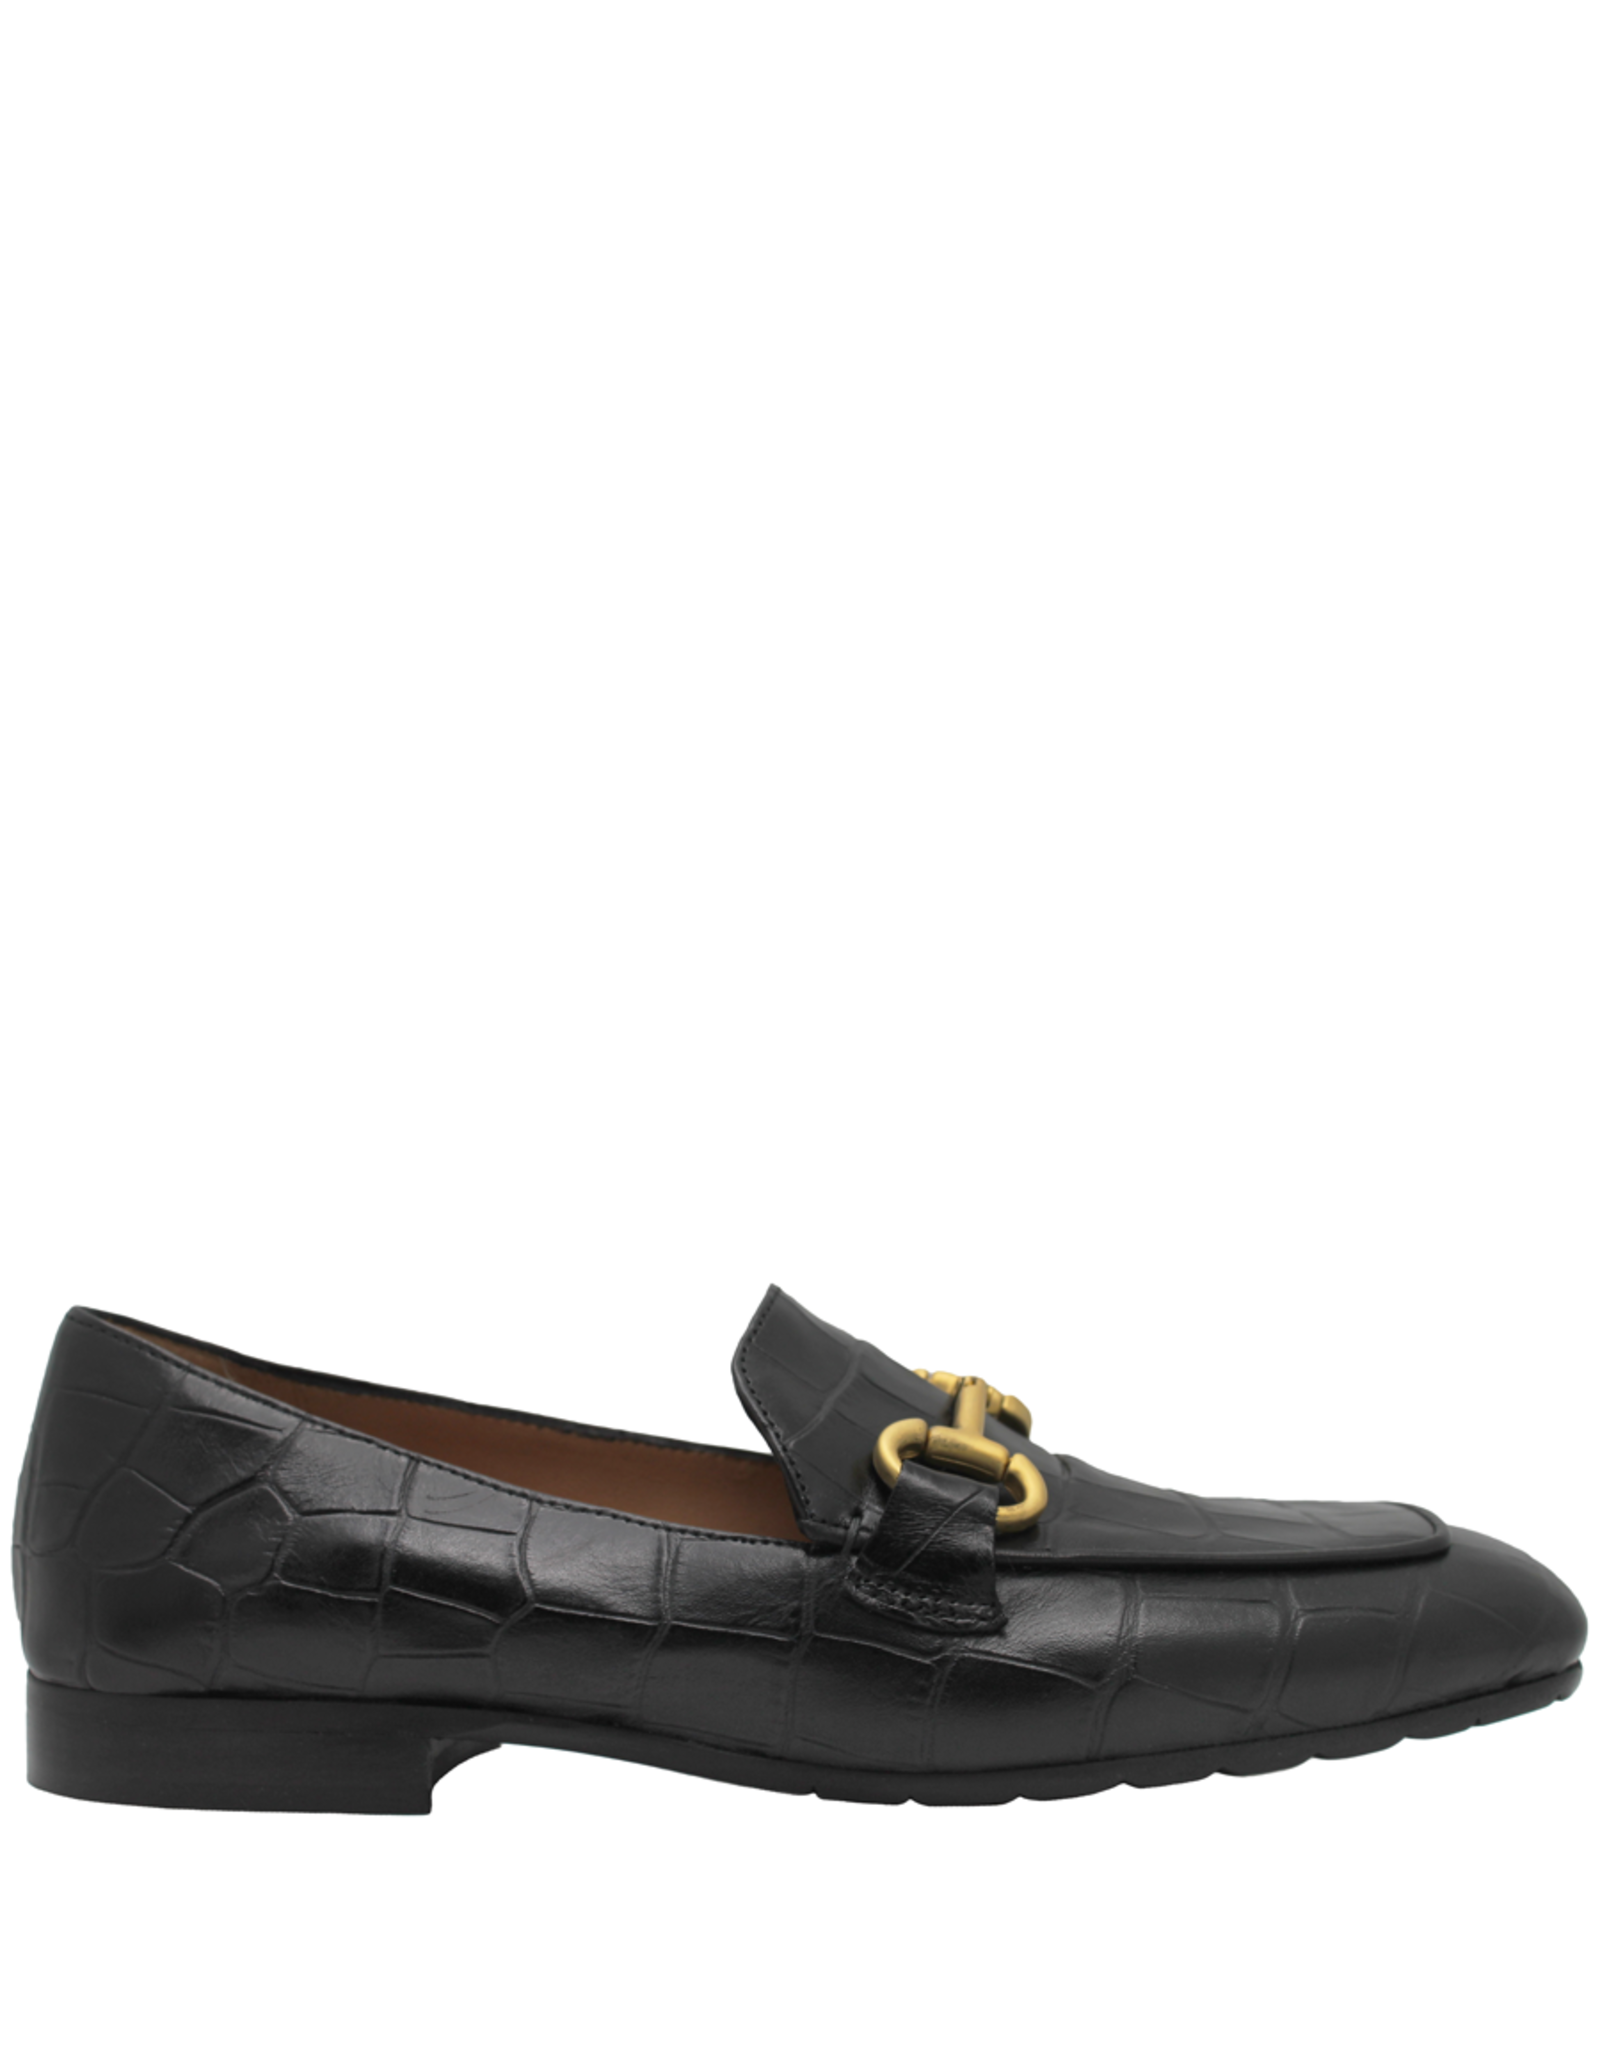 MaraBini MaraBini Black Croco Stamp Loafer With Gold Bit 7412